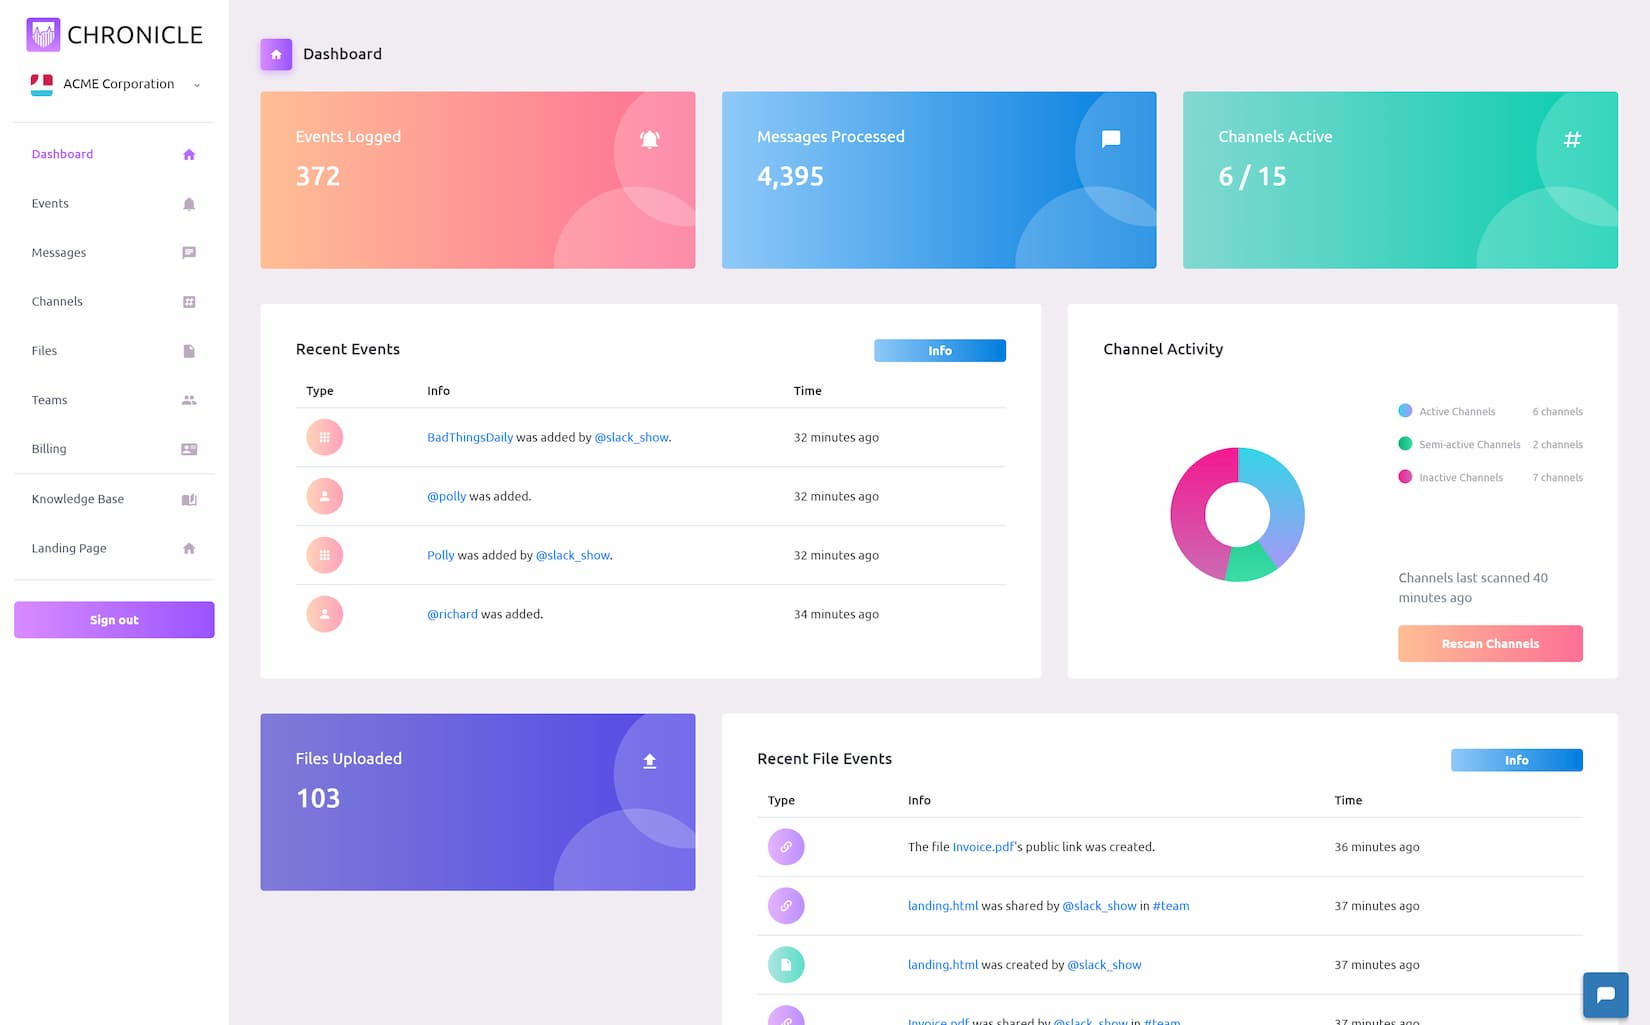 Chronicle Dashboard